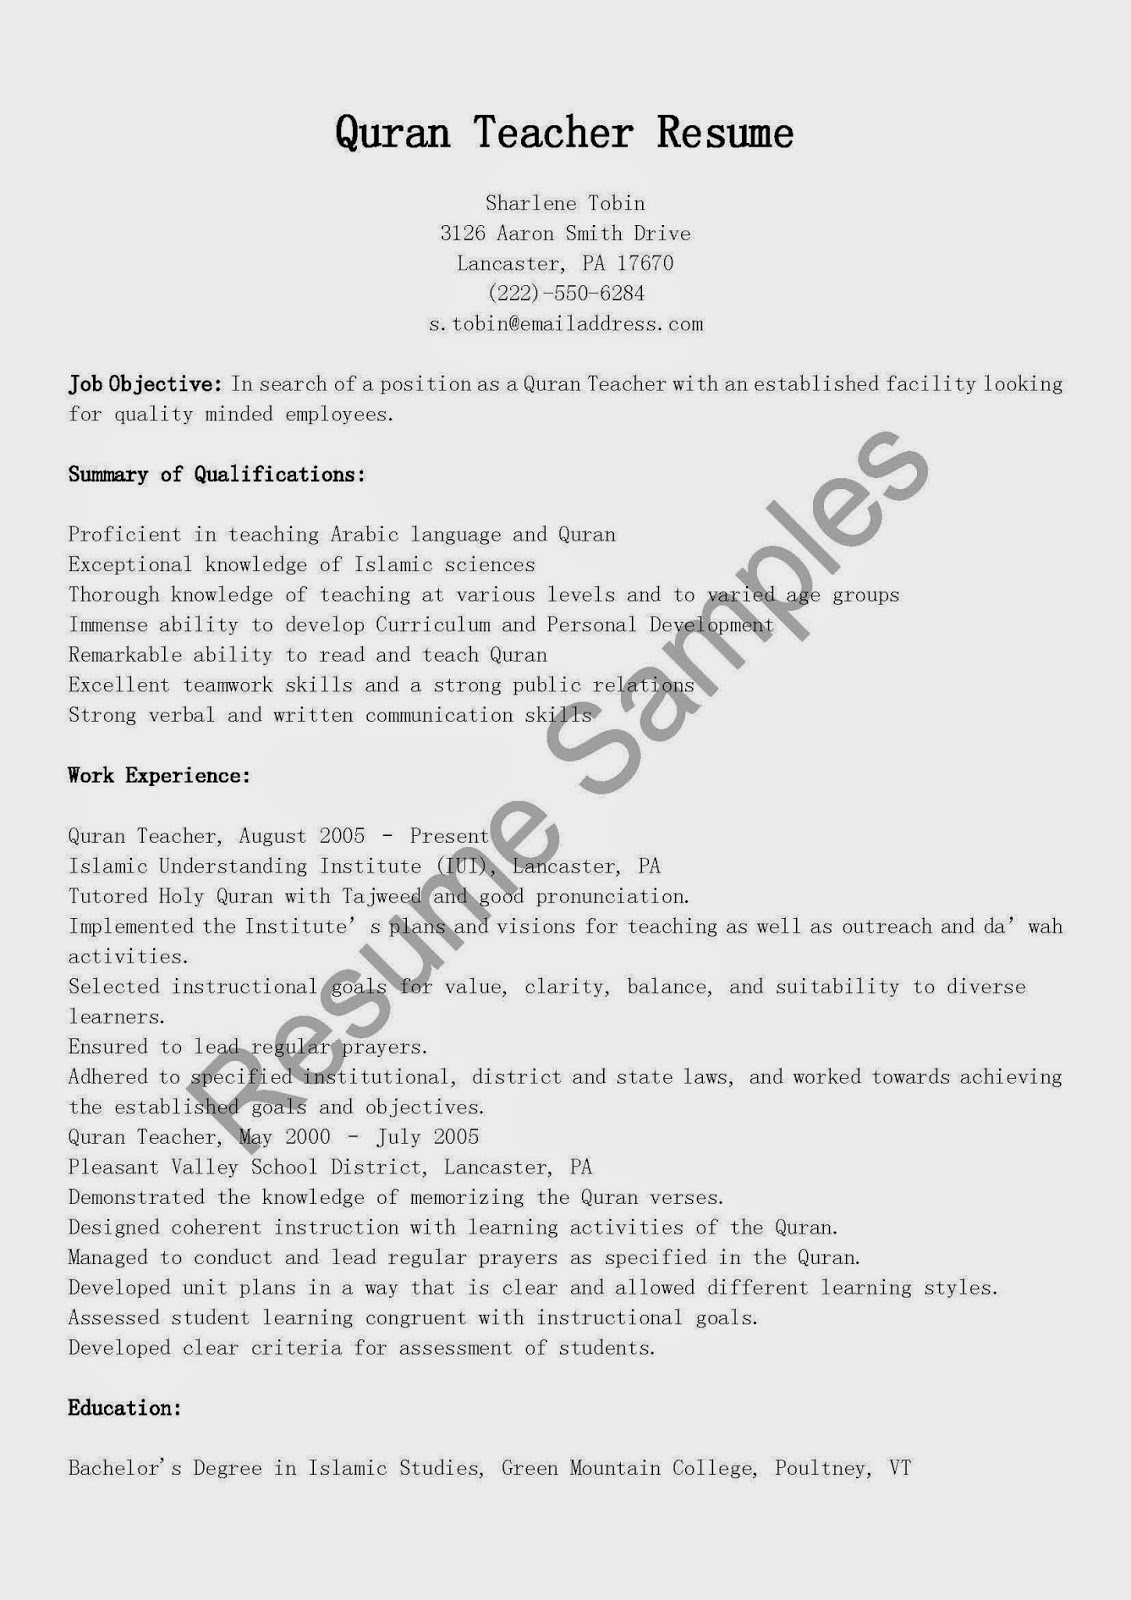 Resume Samples: Quran Teacher Resume Sample